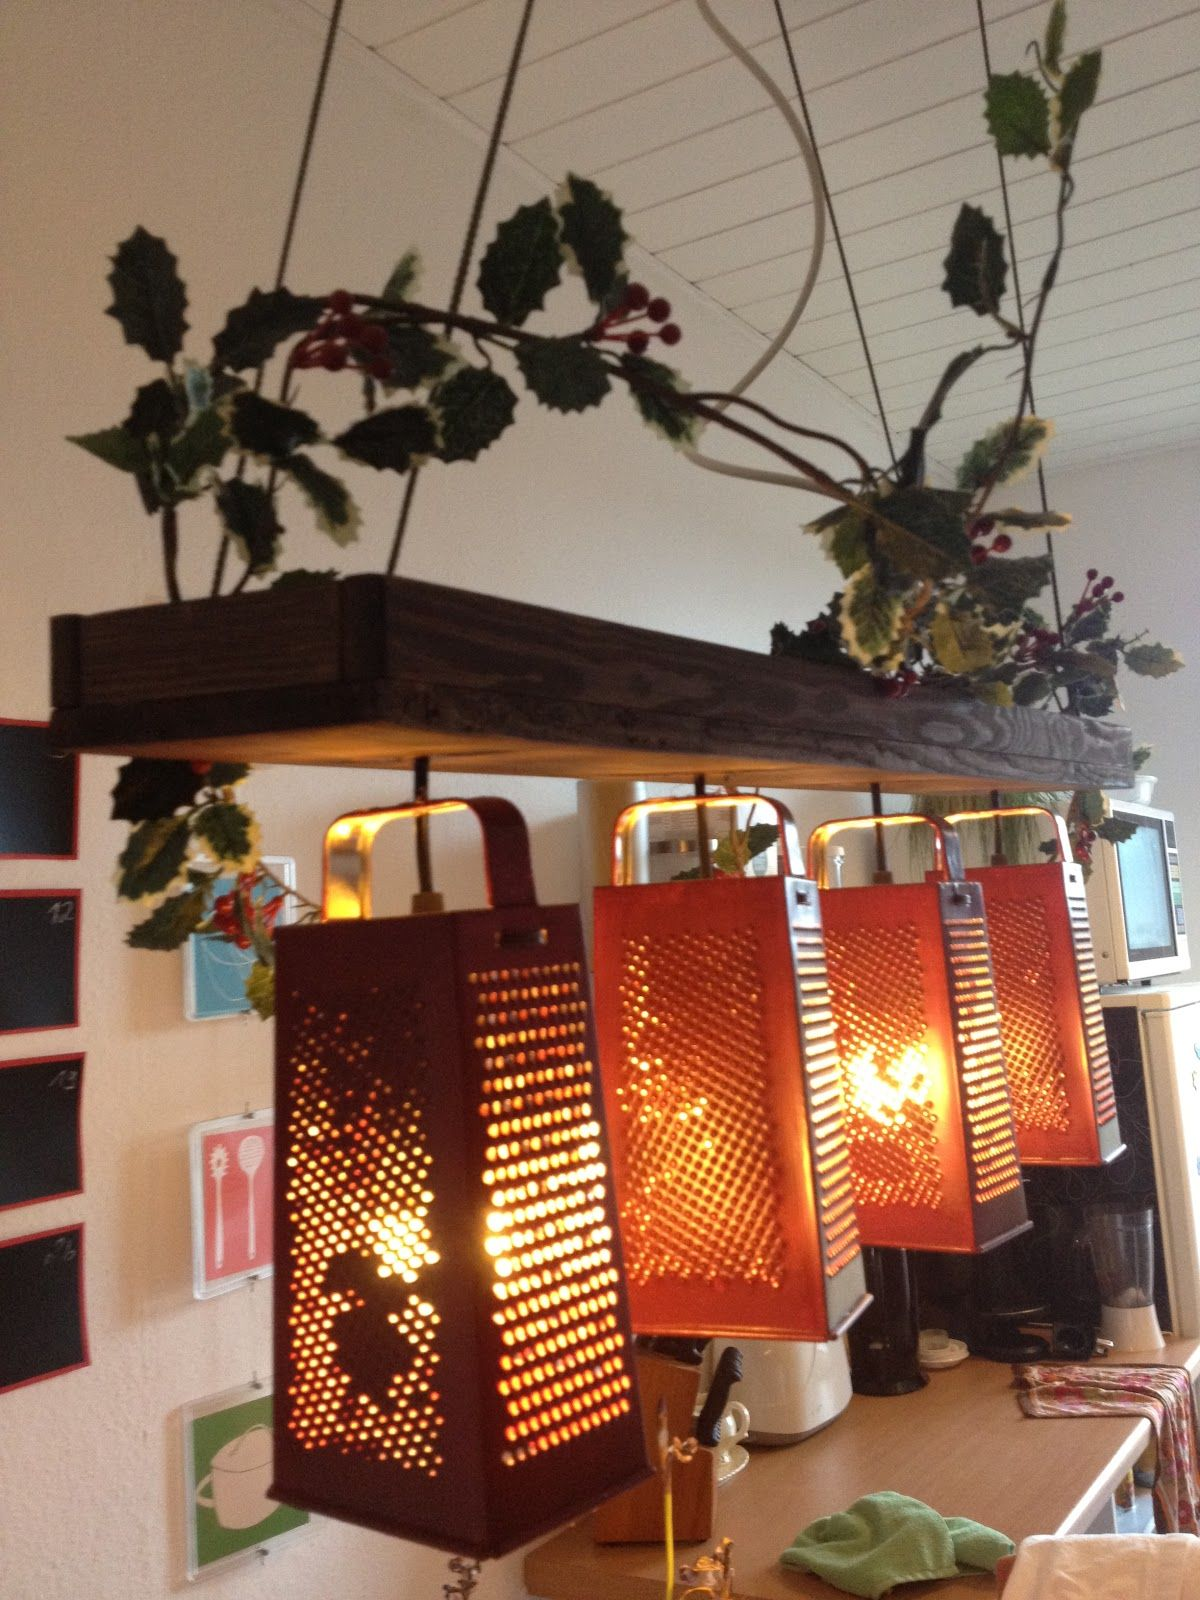 24 Inspirational Diy Ideas To Light Your Home Diy Beleuchtung Diy Lampen Kuchenlampen